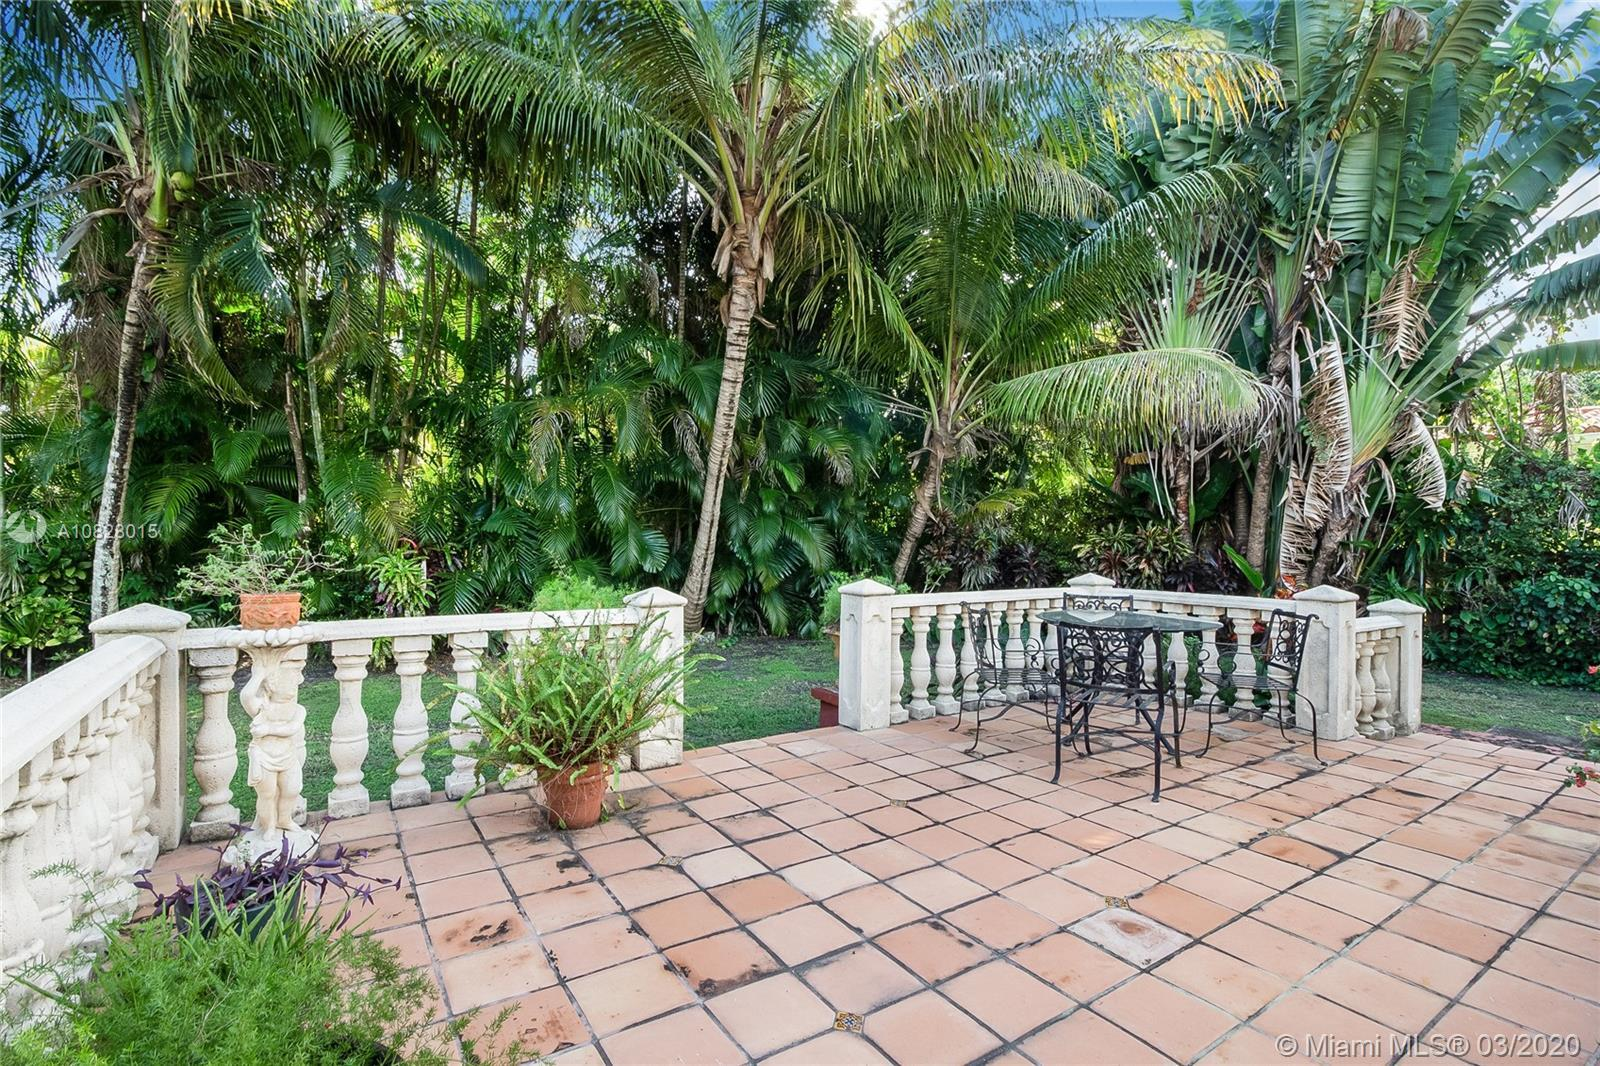 Location, Location!  Great opportunity in the quiet Village of Miami Shores.  Charming 2 beds\1 bath